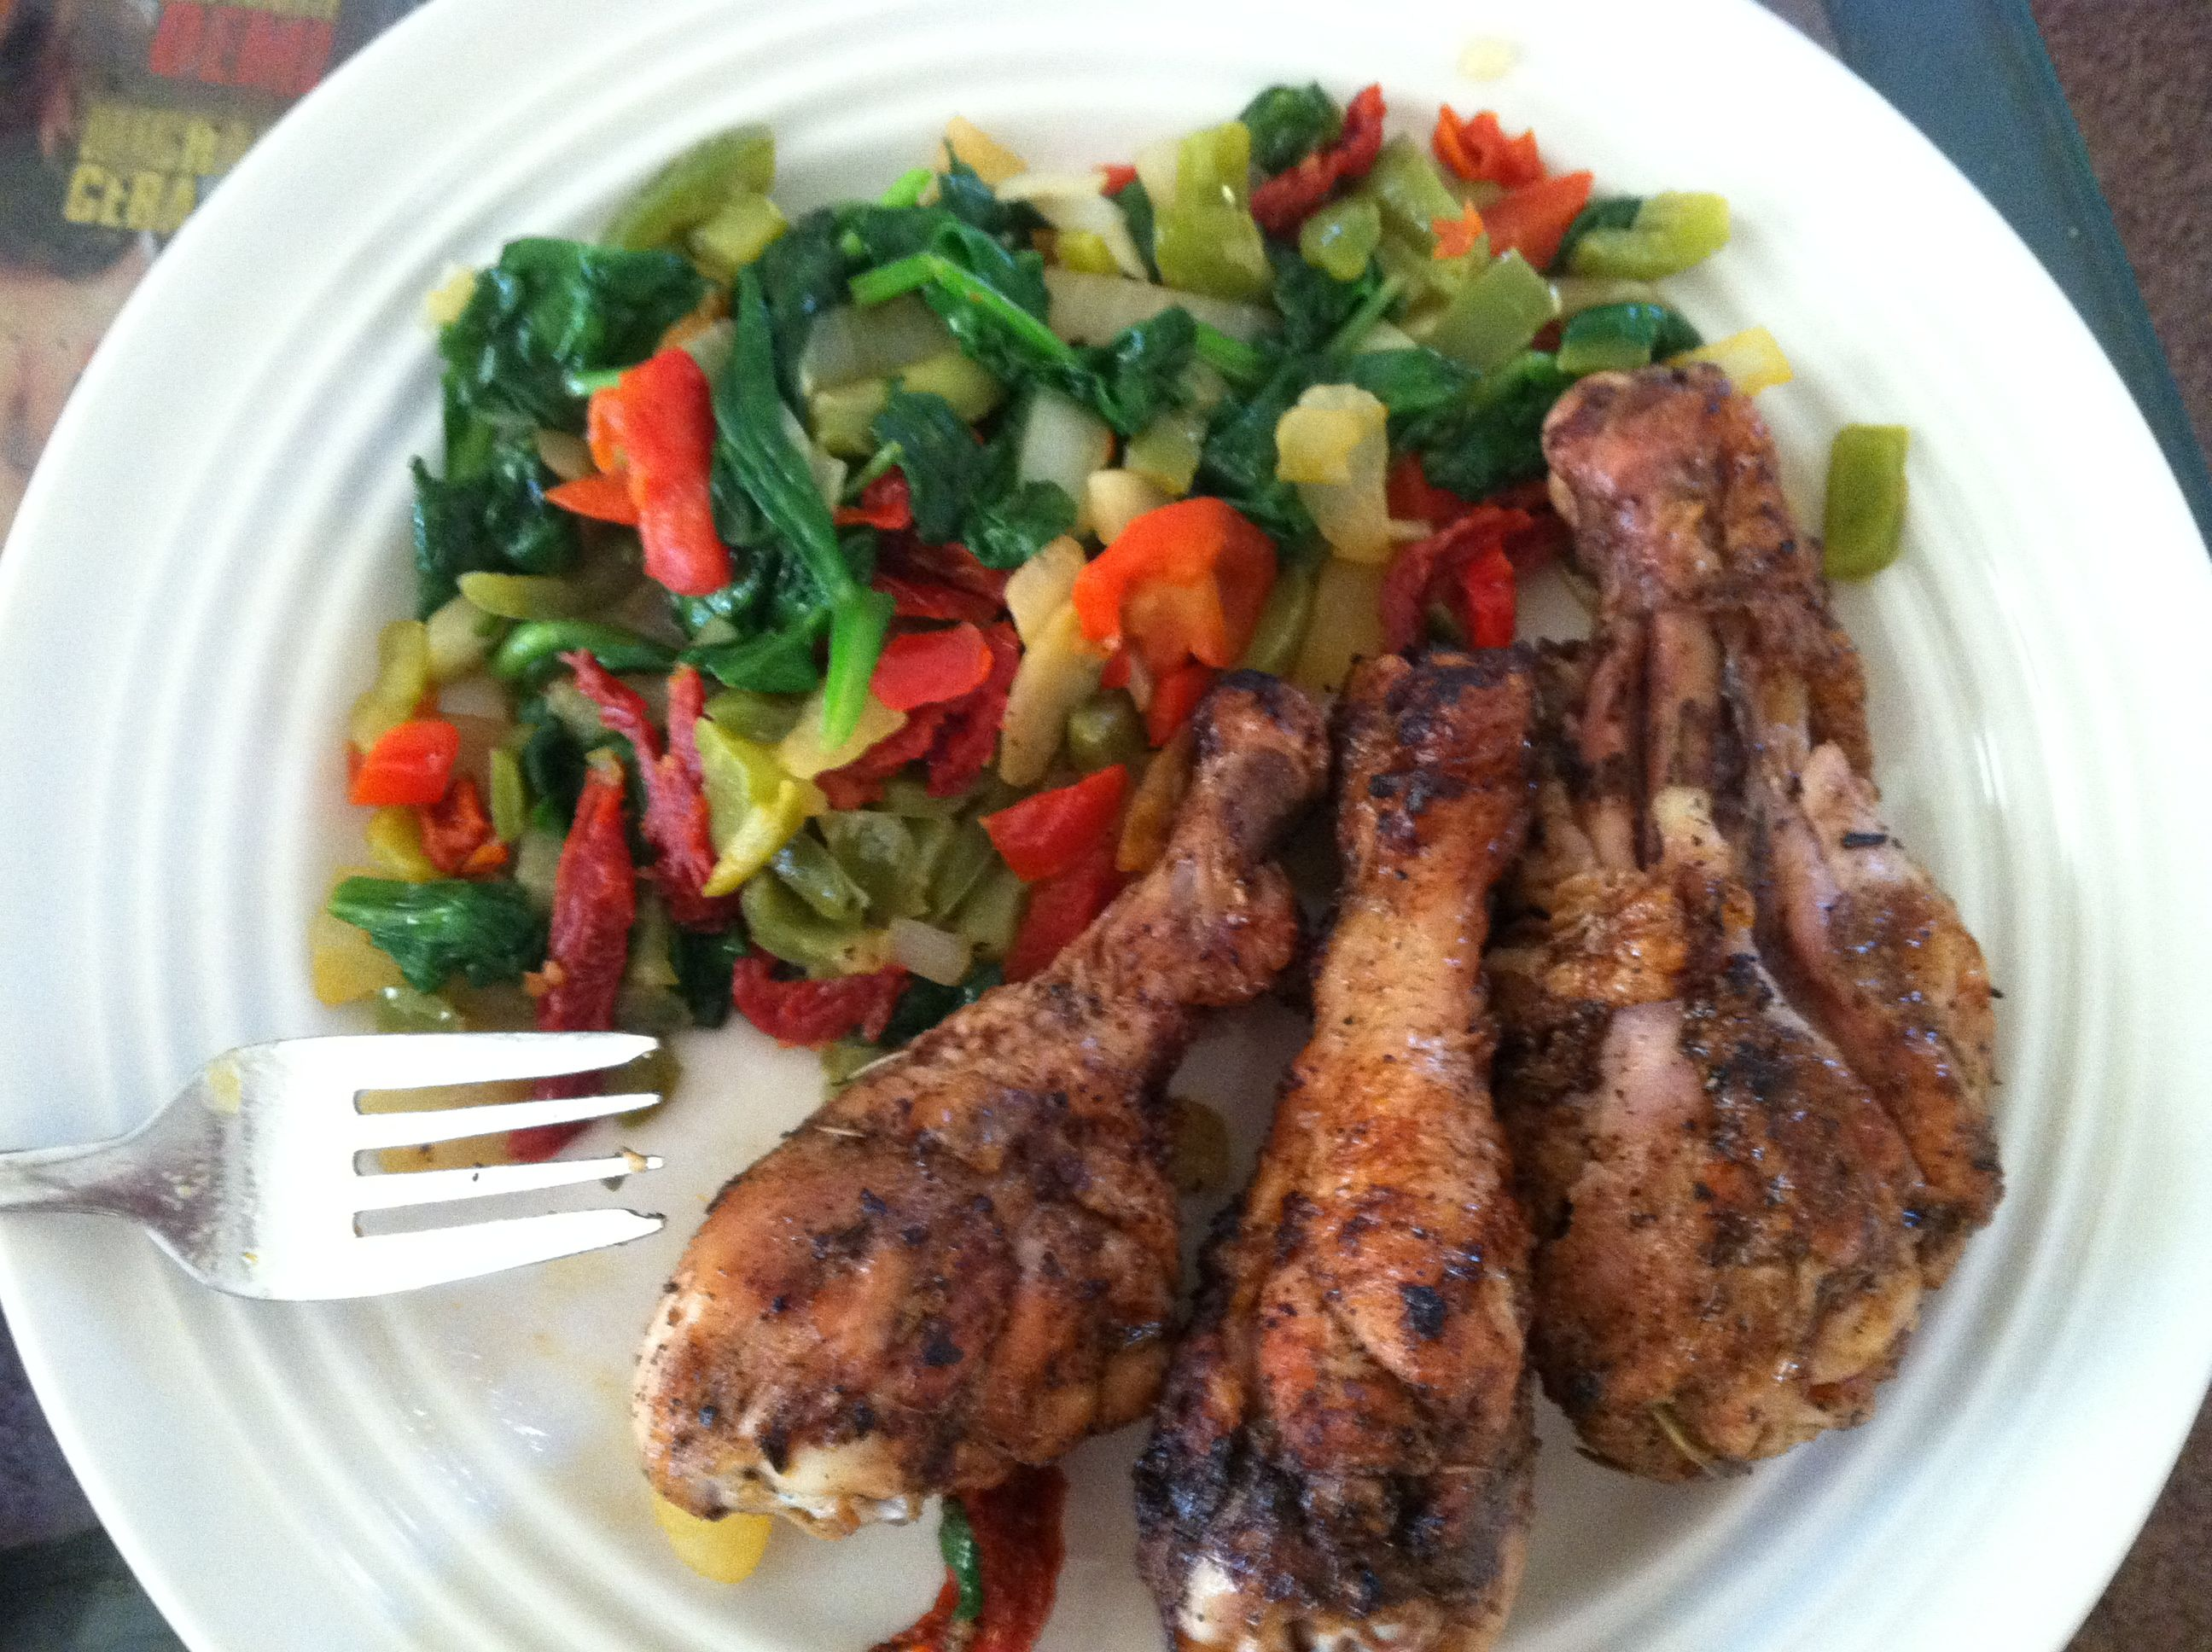 Learn how to make stunning paleo meals todaye recipes http learn how to make stunning paleo meals todaye recipes forumfinder Choice Image